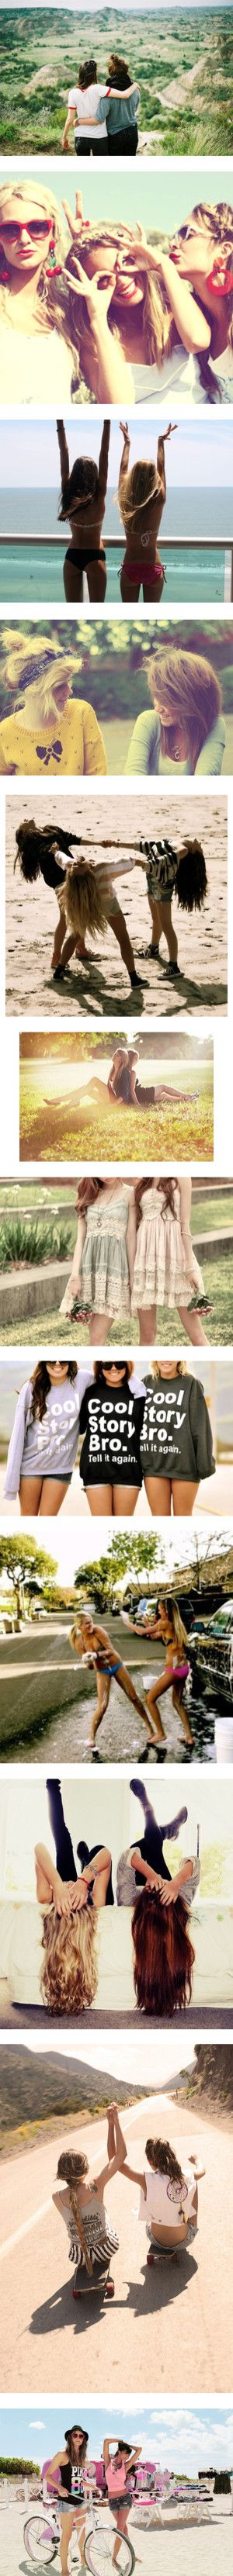 """""""Tan skin; crazy days; late nights: Summer 2012"""" by lovelylifedarling ❤ liked on Polyvore"""